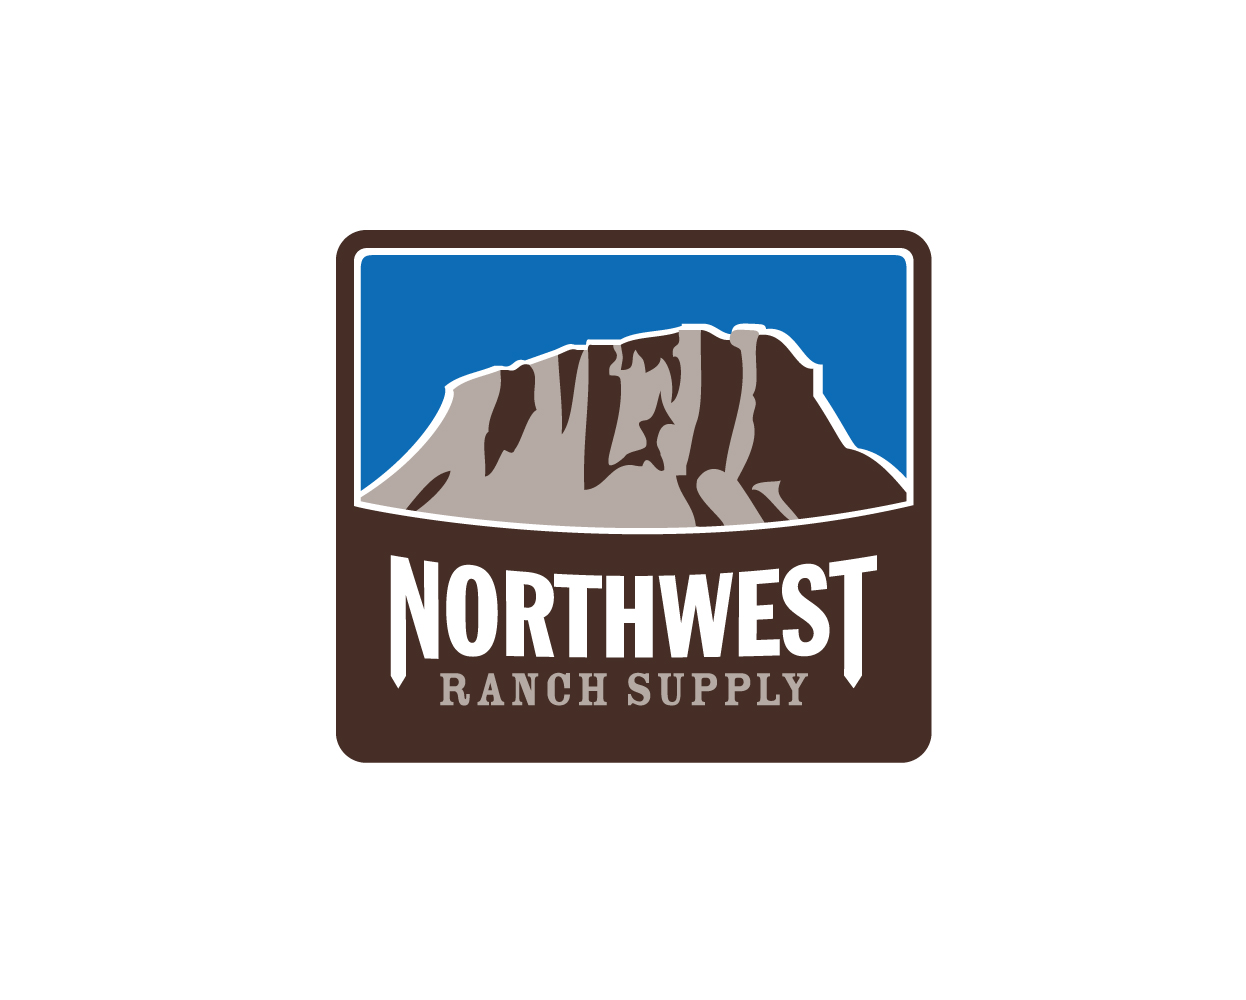 Northwest Ranch Supply | Identity